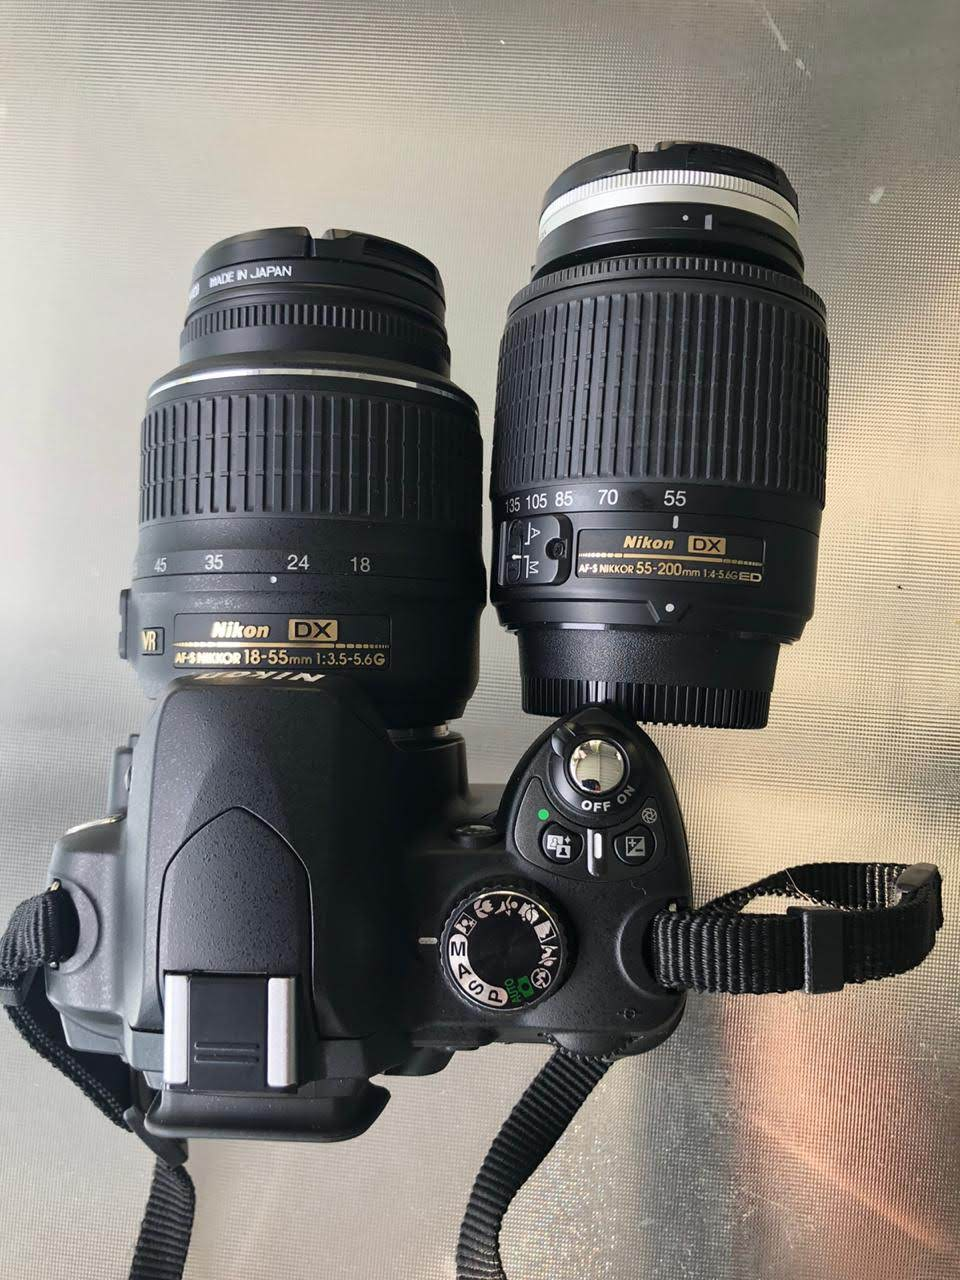 Nikon D60 Camera with 2 lenses